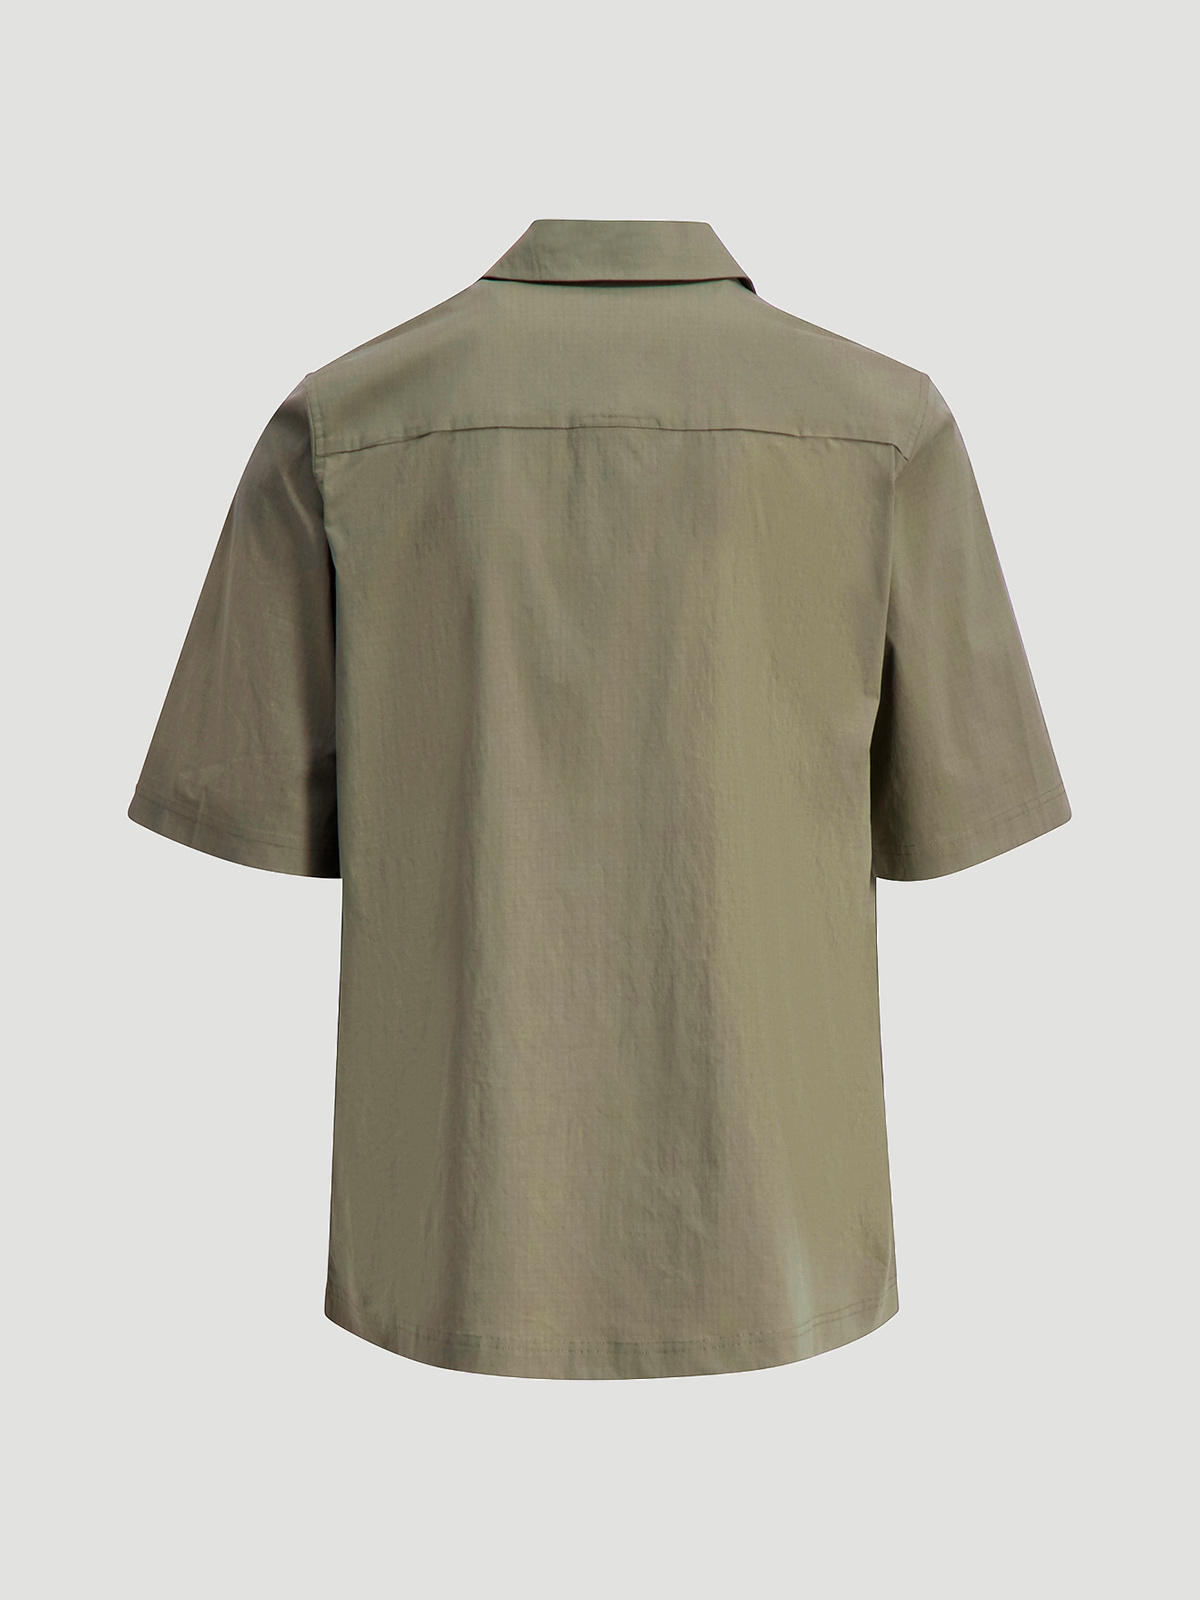 Wilas Shirt Olive Green 6